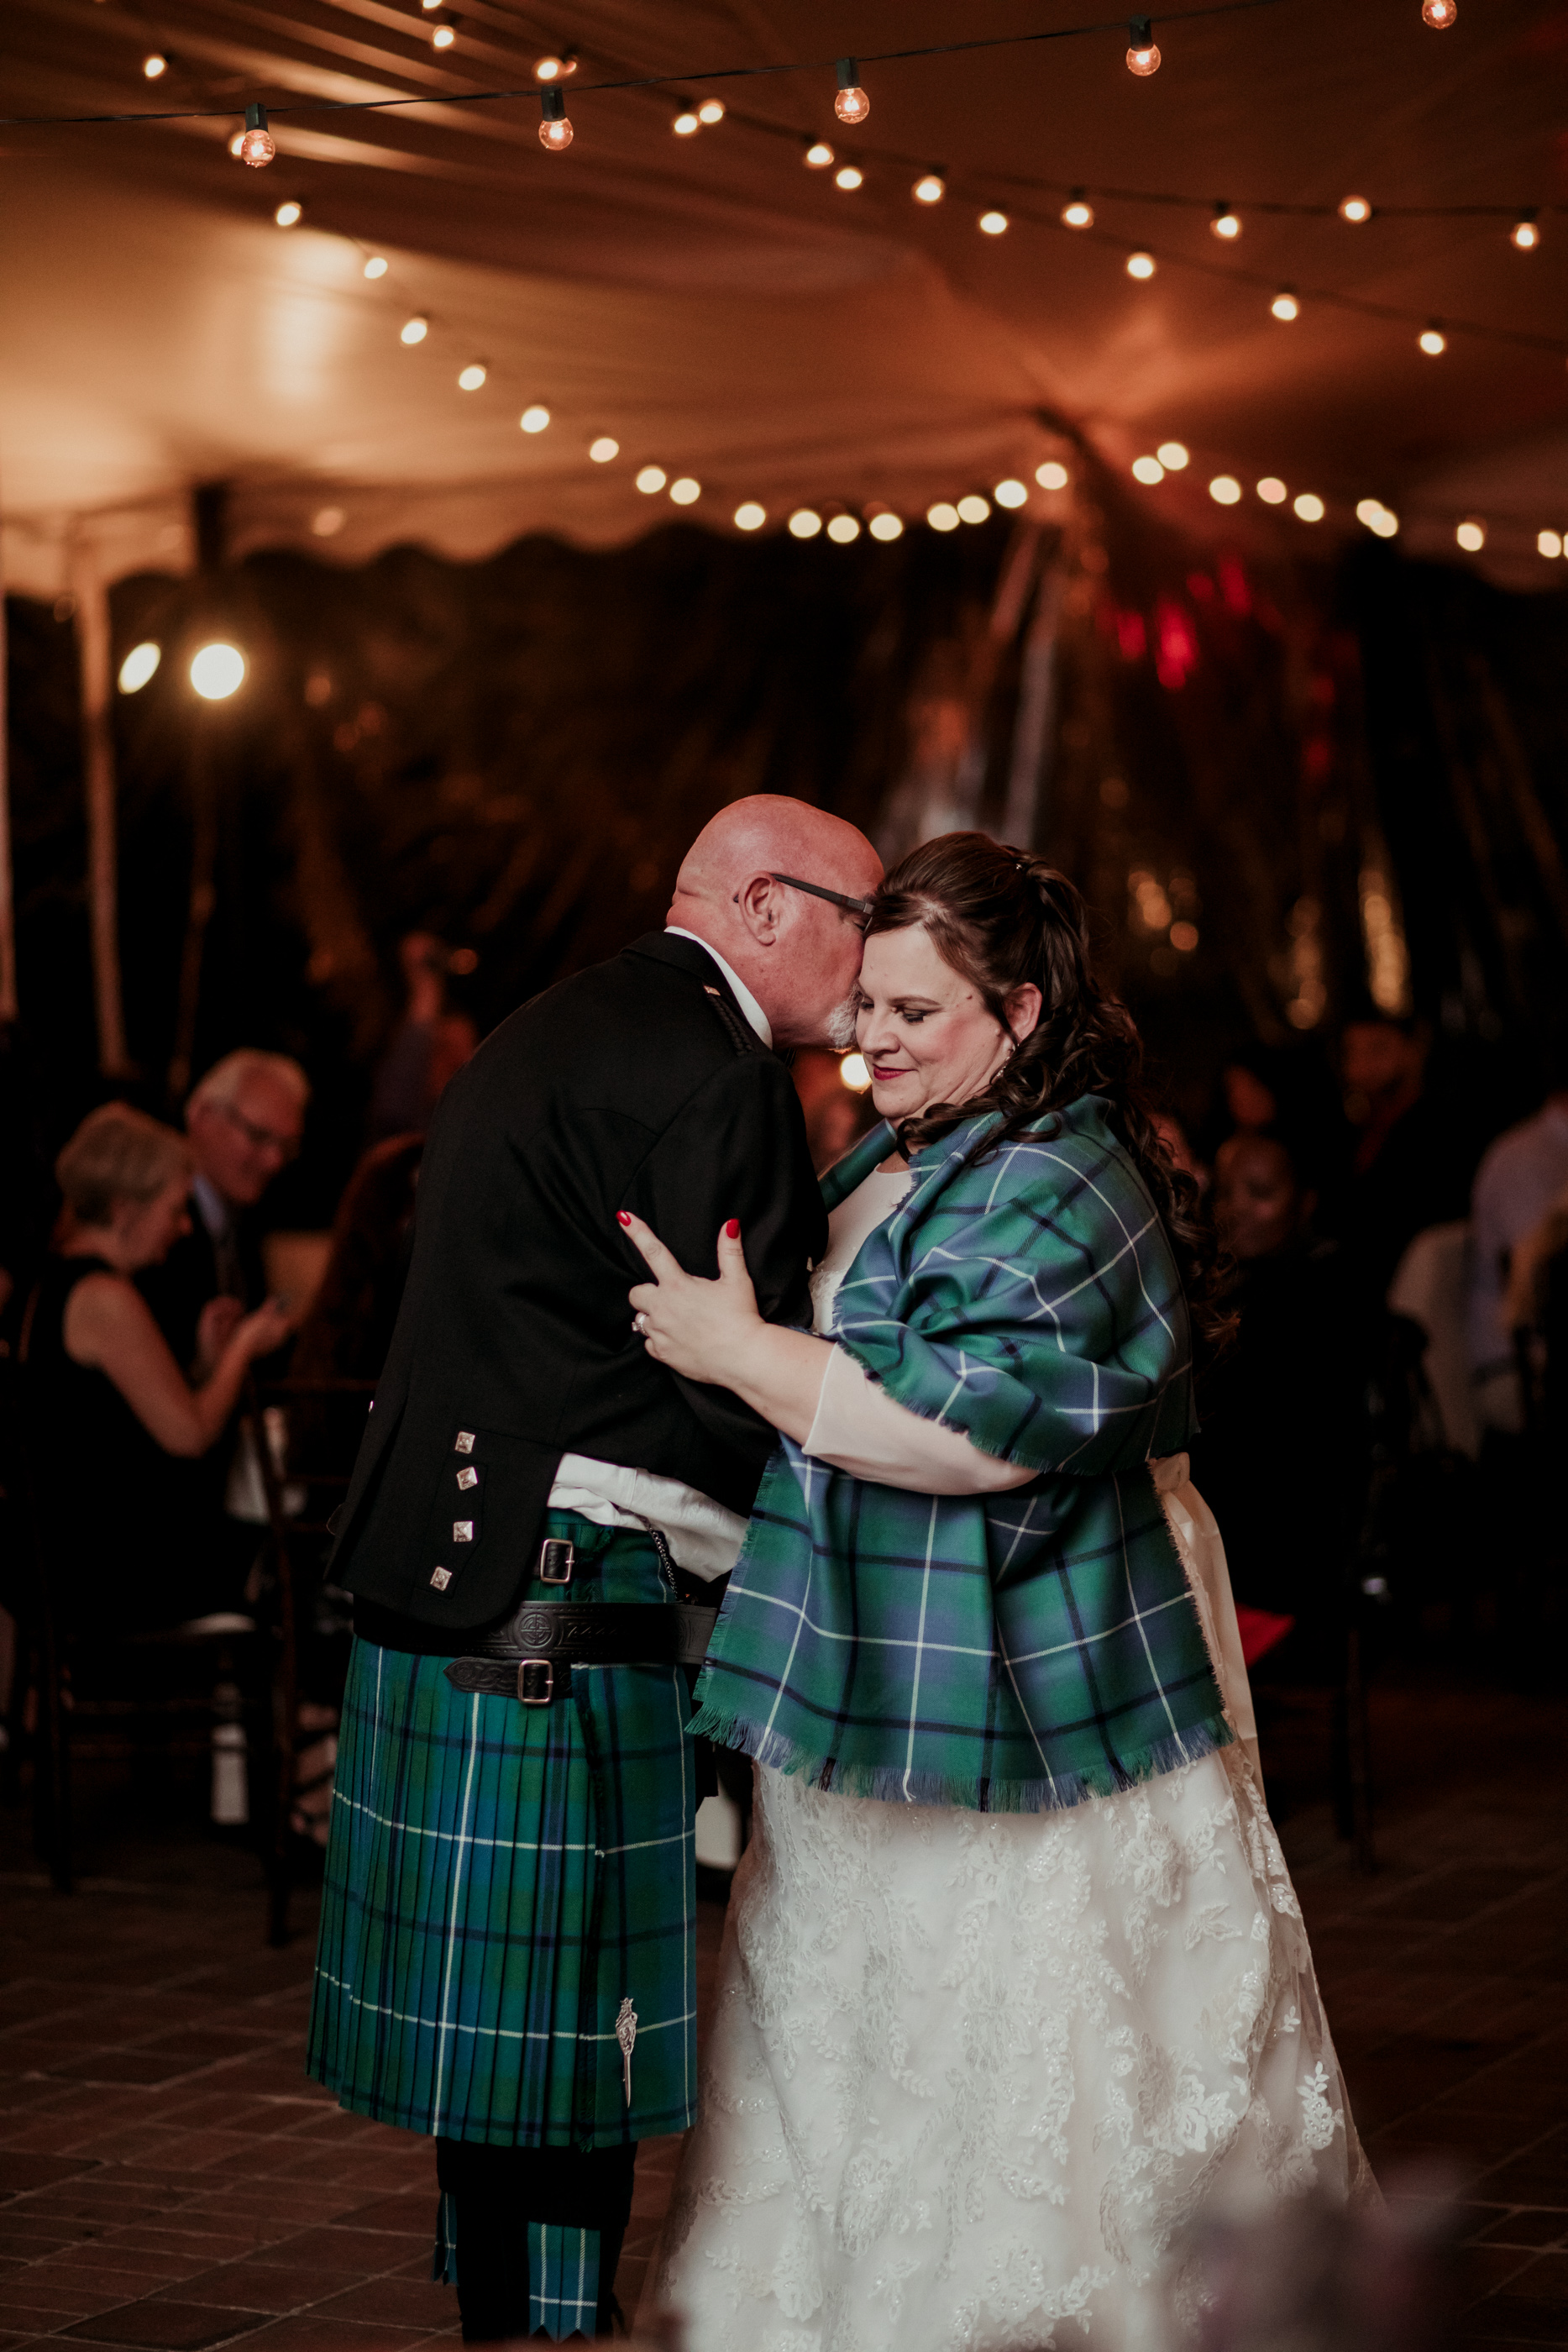 scottish bride and groom wearing tartan